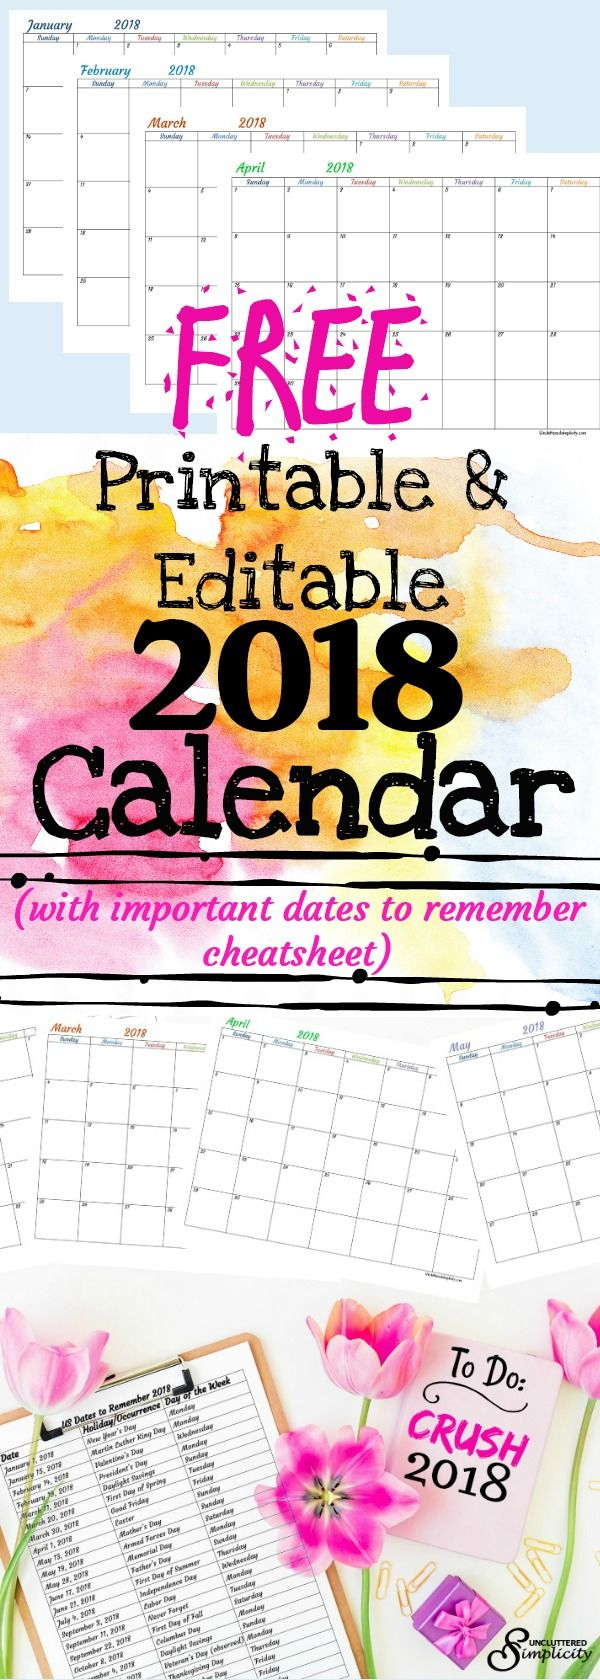 Free 2018 Printable Calendar-To Help You Crush Your Year